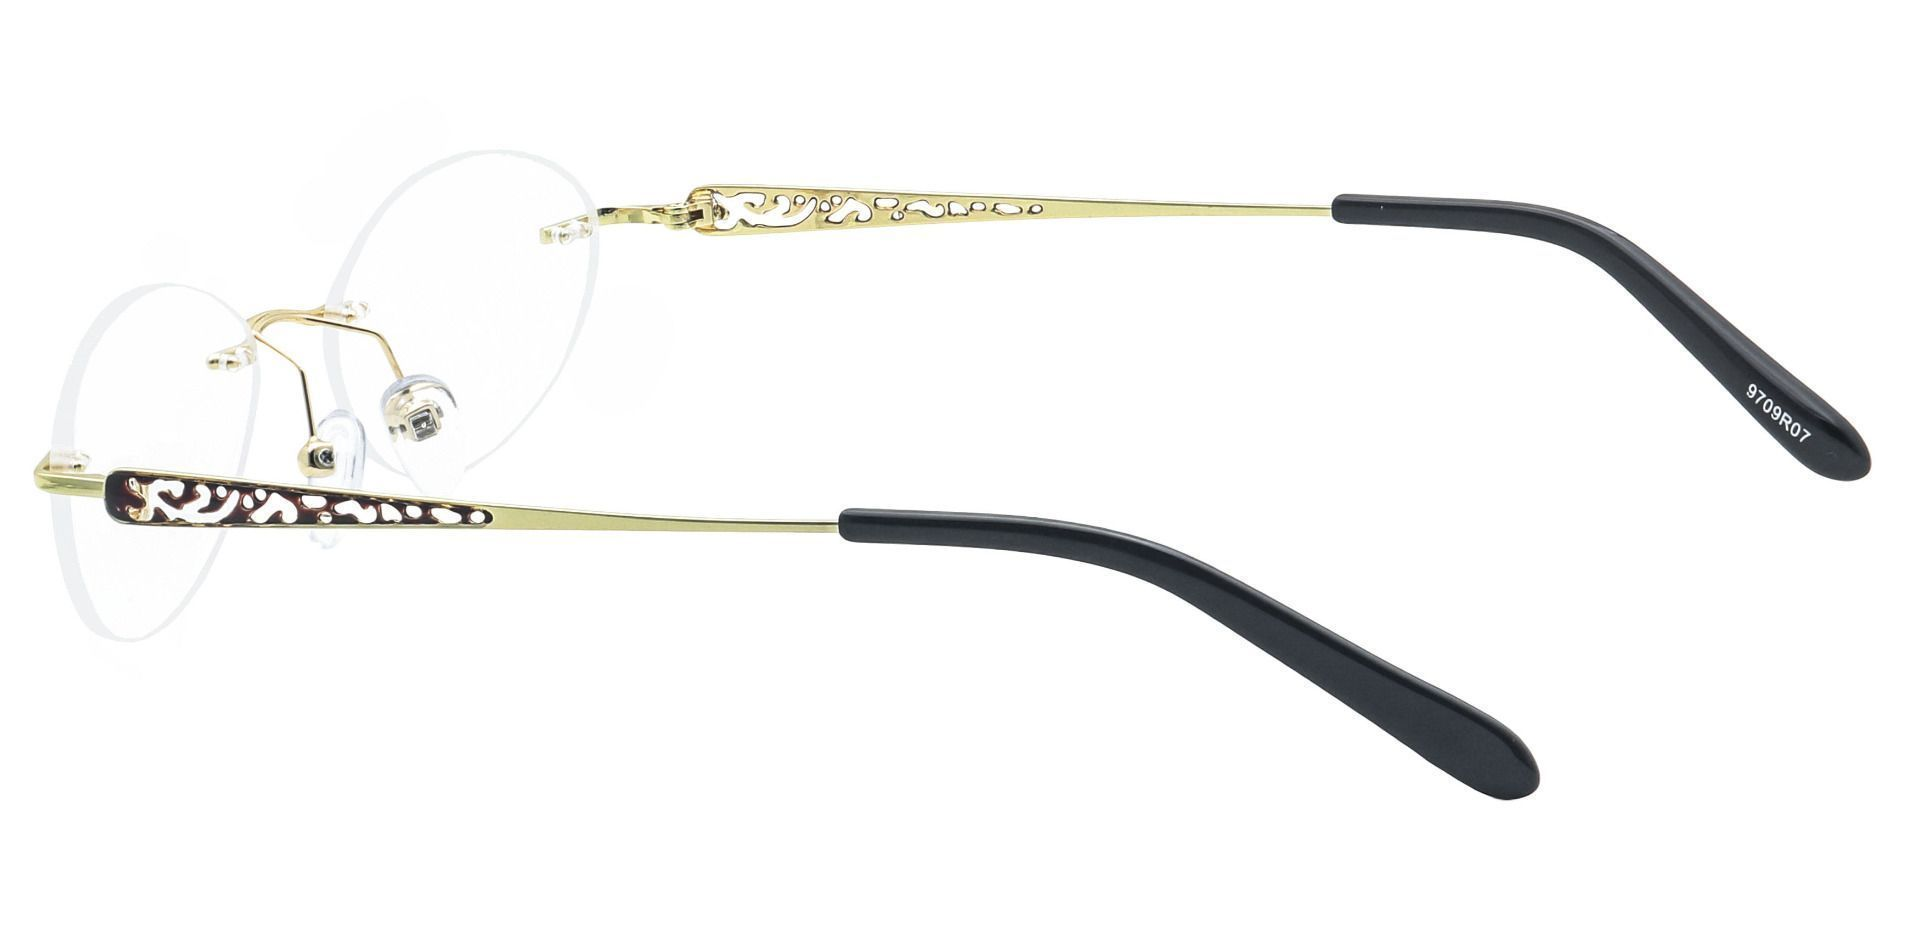 Christina Rimless Lined Bifocal Glasses - The Frame Is Yellow And Red